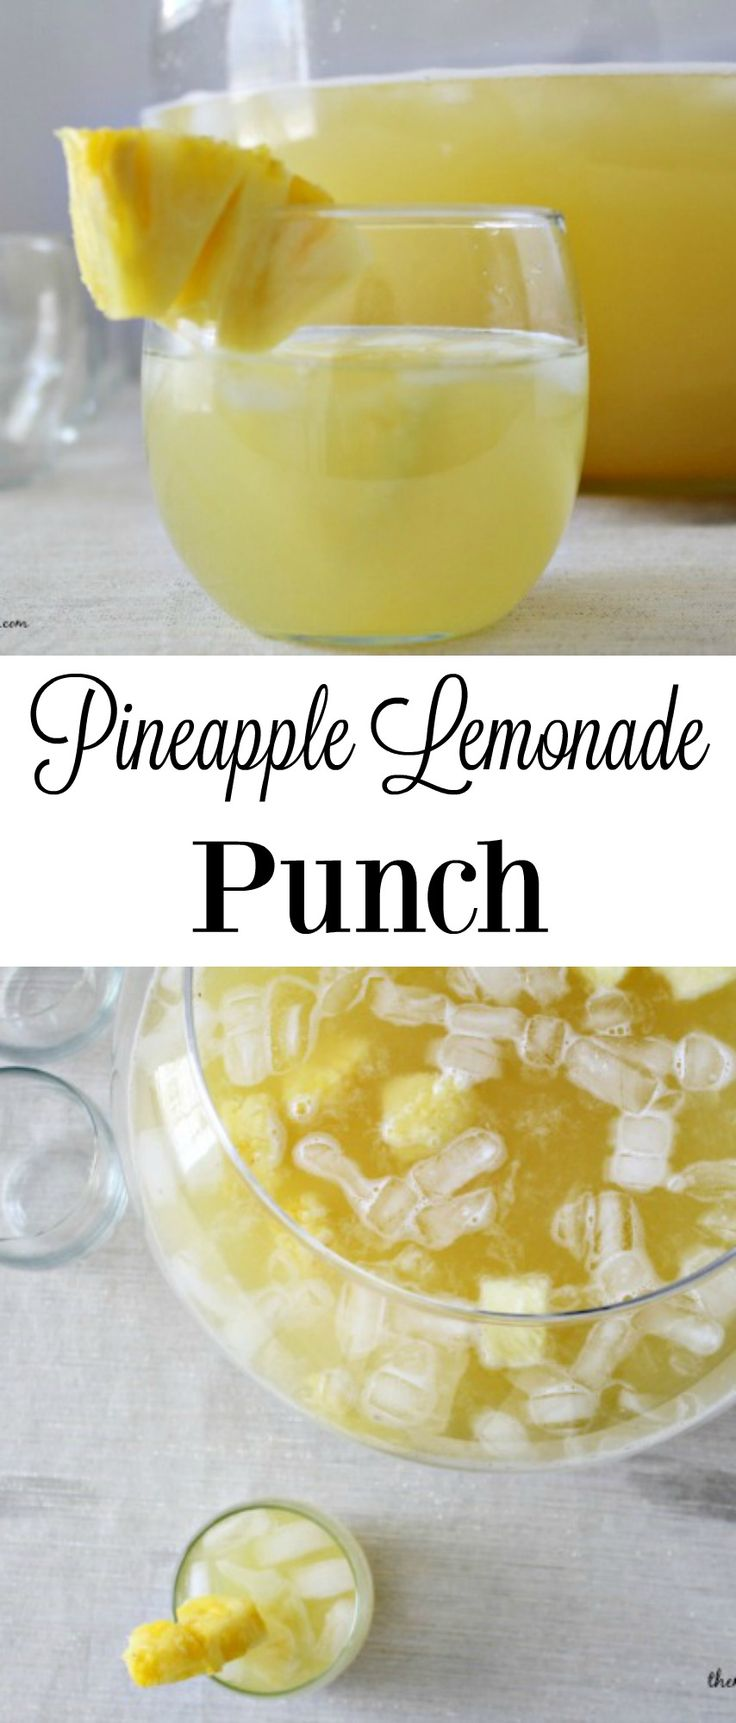 Pineapple Lemonade Punch is the perfect non-alcoholic beverage for any event.